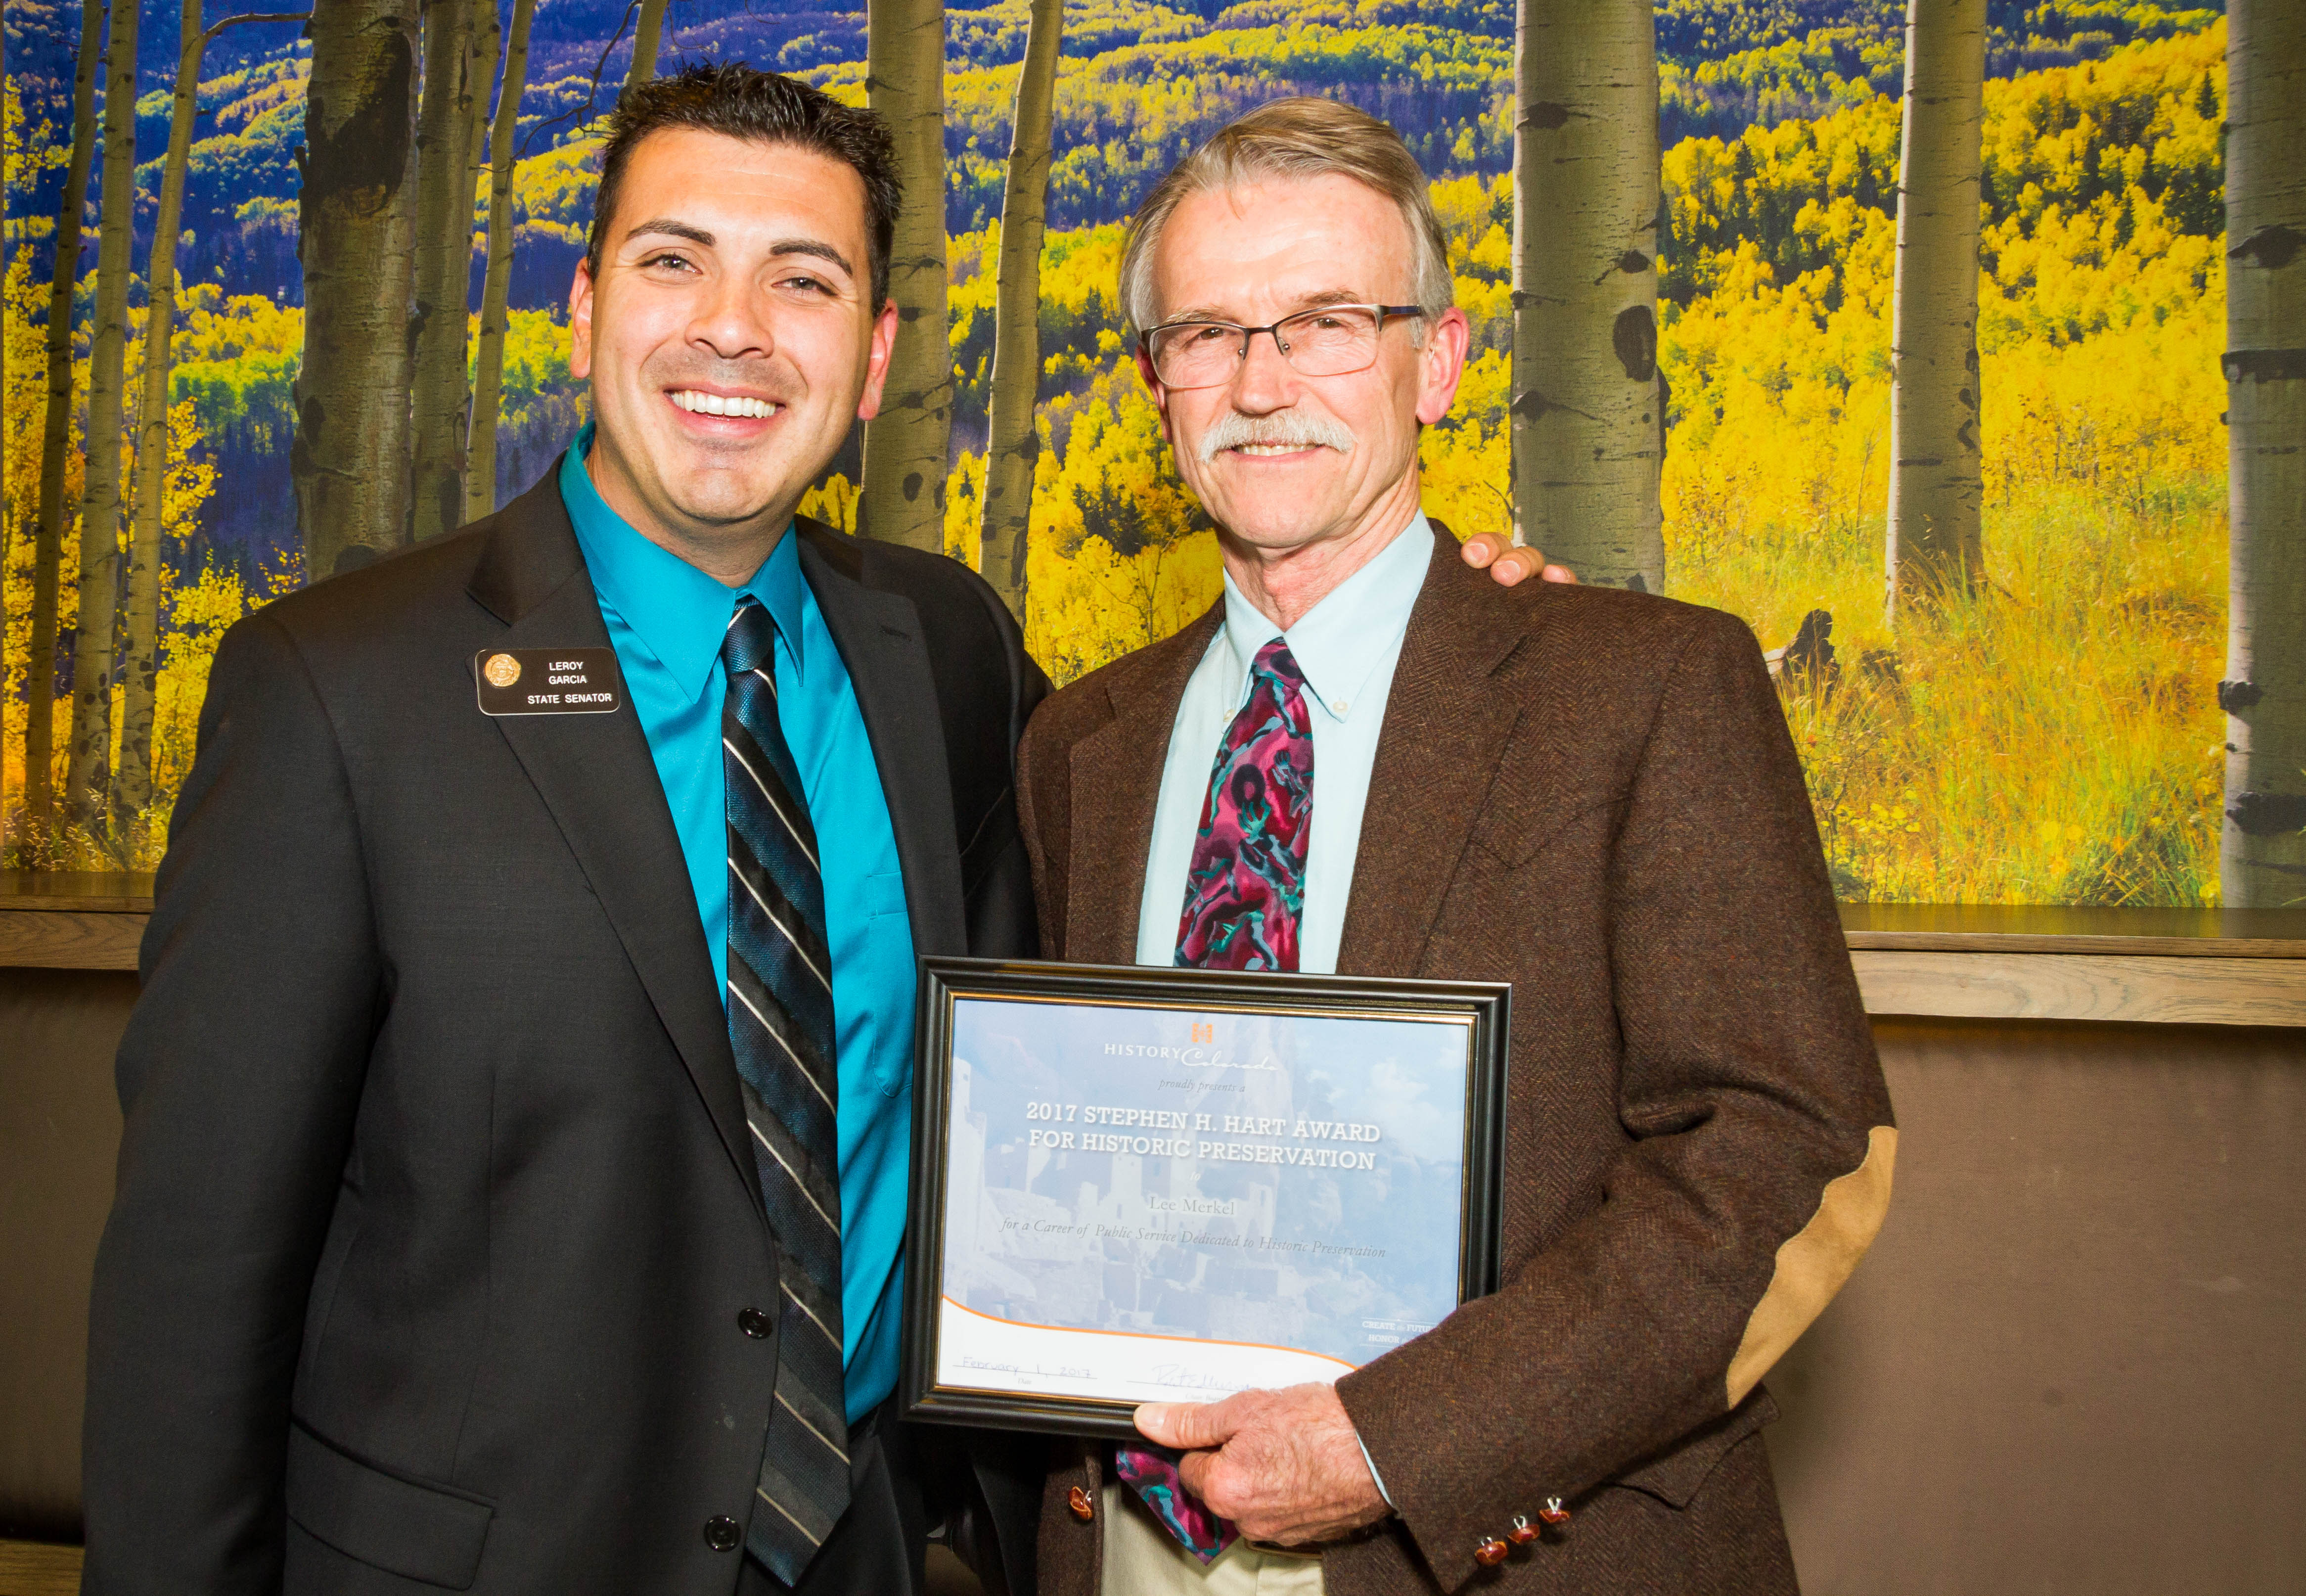 State Senator Leroy Garcia stands next to Lee Merkel, who is holding his recently received Hart Award certificate.